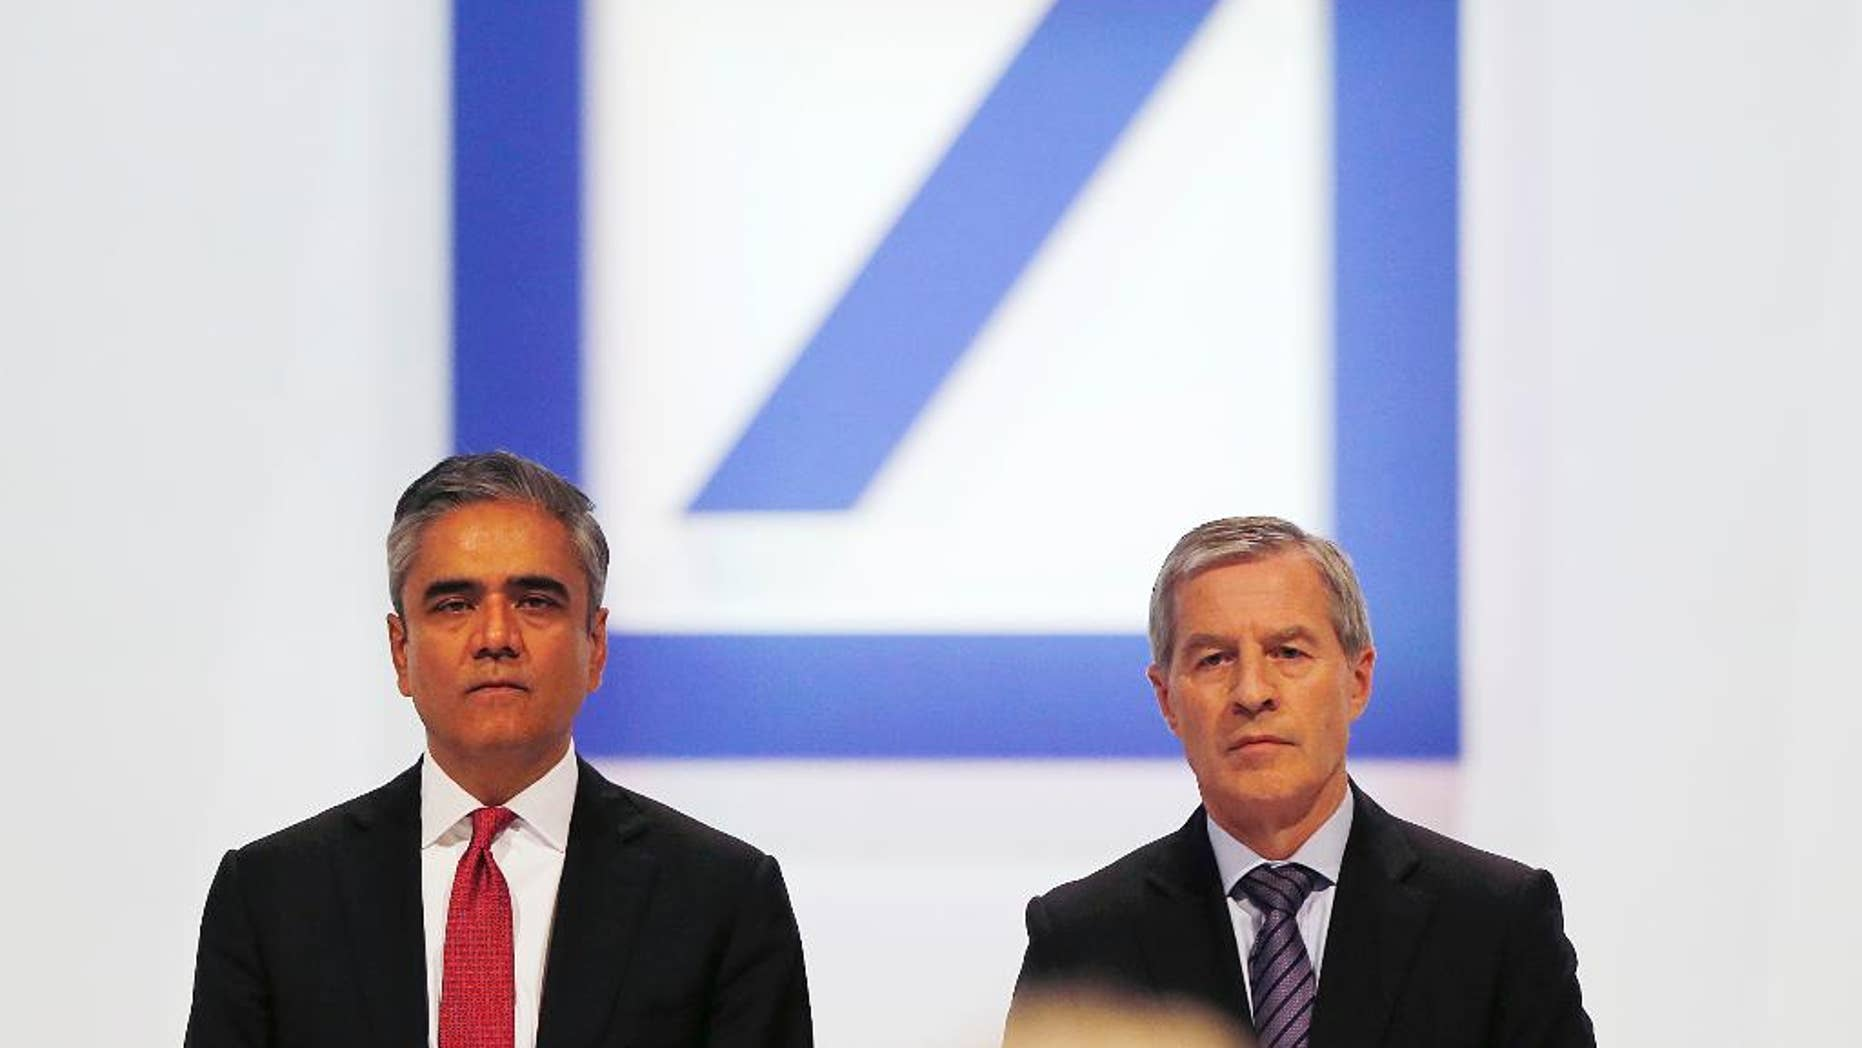 FILE - In this May 22, 2014 file photo Co-CEOs of Deutsche Bank Anshu Jain, left, and Juergen Fitschen pose for photographers during the annual shareholders meeting in Frankfurt, Germany. Deutsche Bank said Sunday, June 7, 2015 that Jain and Fitschen will resign.  John Cryan will succeed Jain in July 2015 and will become the sole CEO in May 2016.  (AP Photo/Michael Probst, file)